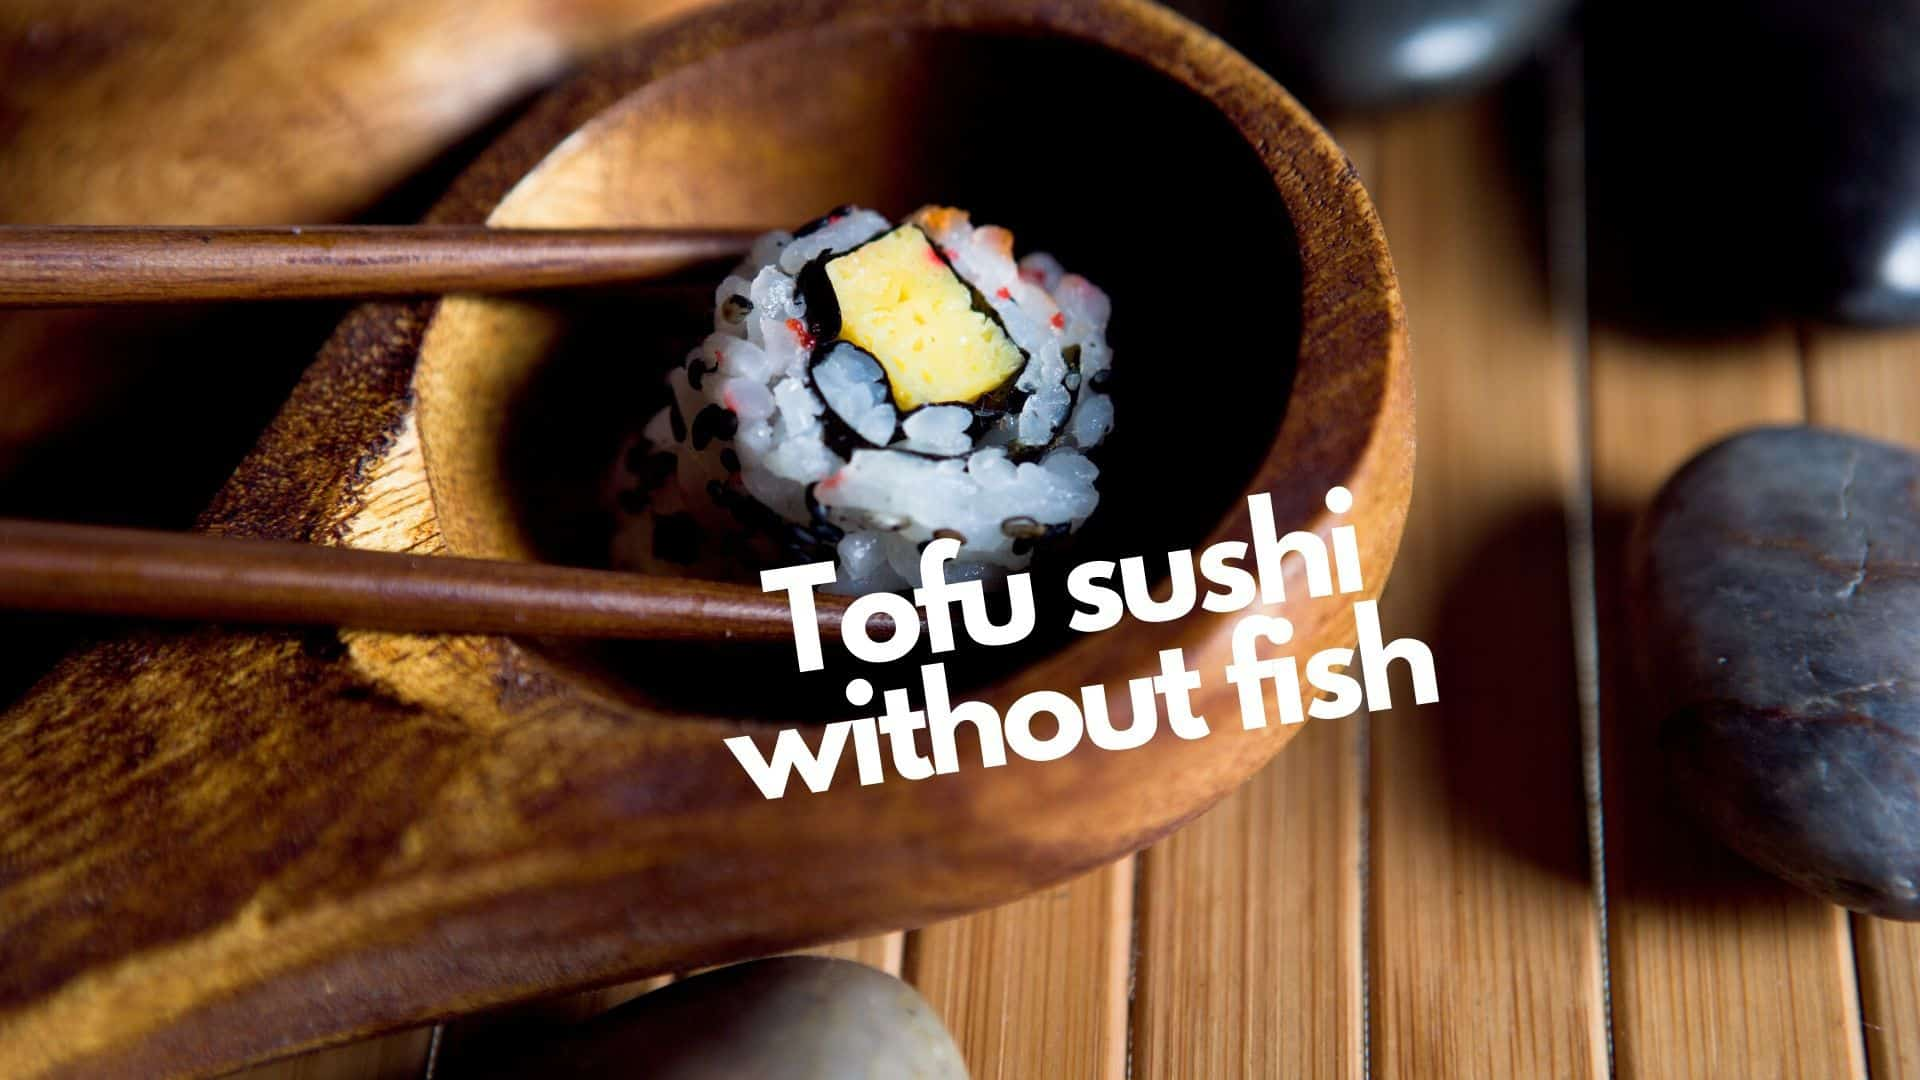 Sushi without fish or seafood: Delicious tofu recipe & more fillings